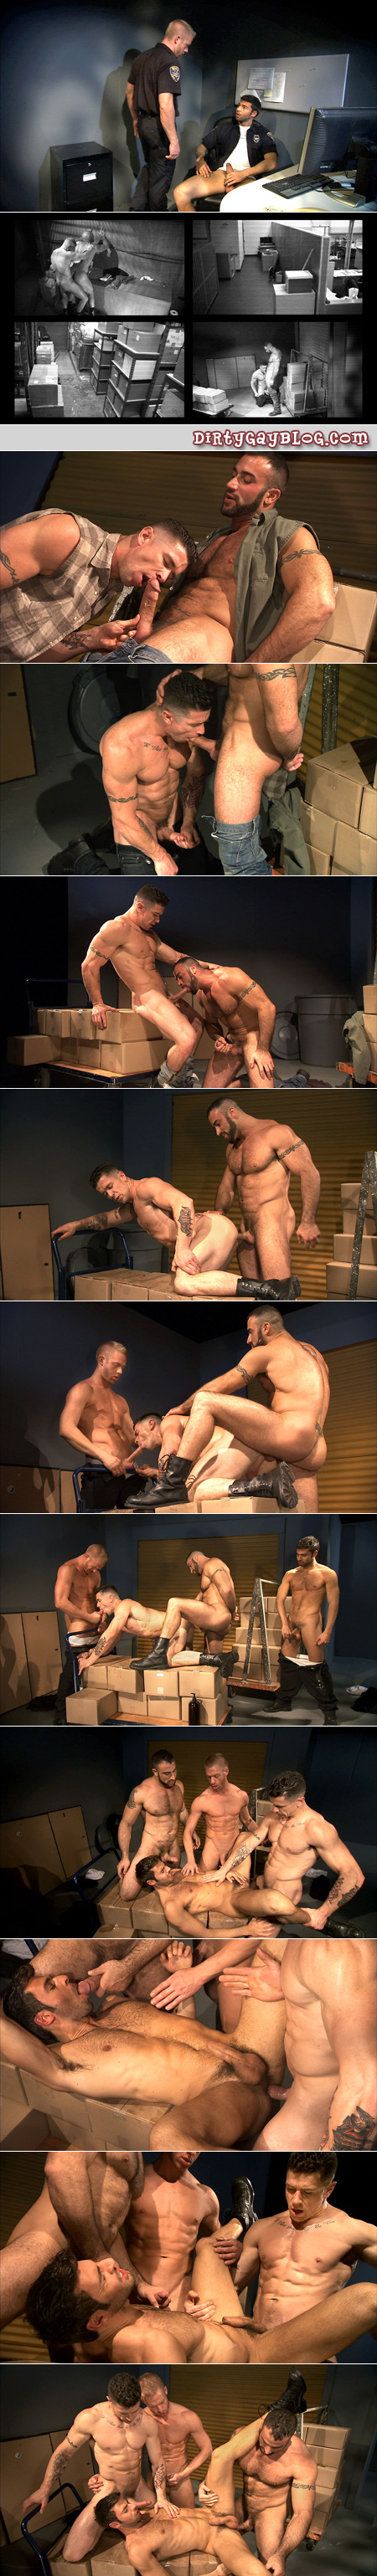 Two horny security guards watch muscle men have gay sex on the security camera before joining them in a gay orgy.